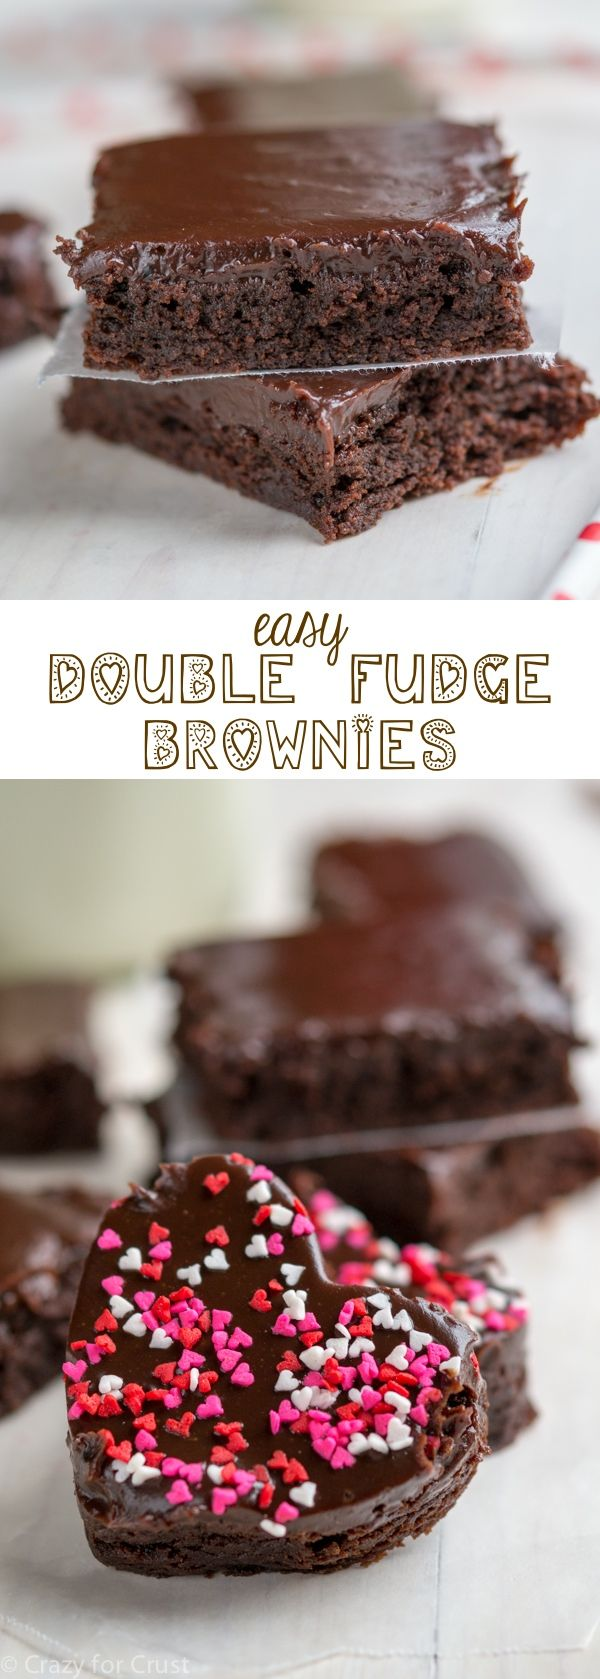 Easy Double Fudge Brownies - make them into hearts for Valentine's Day!